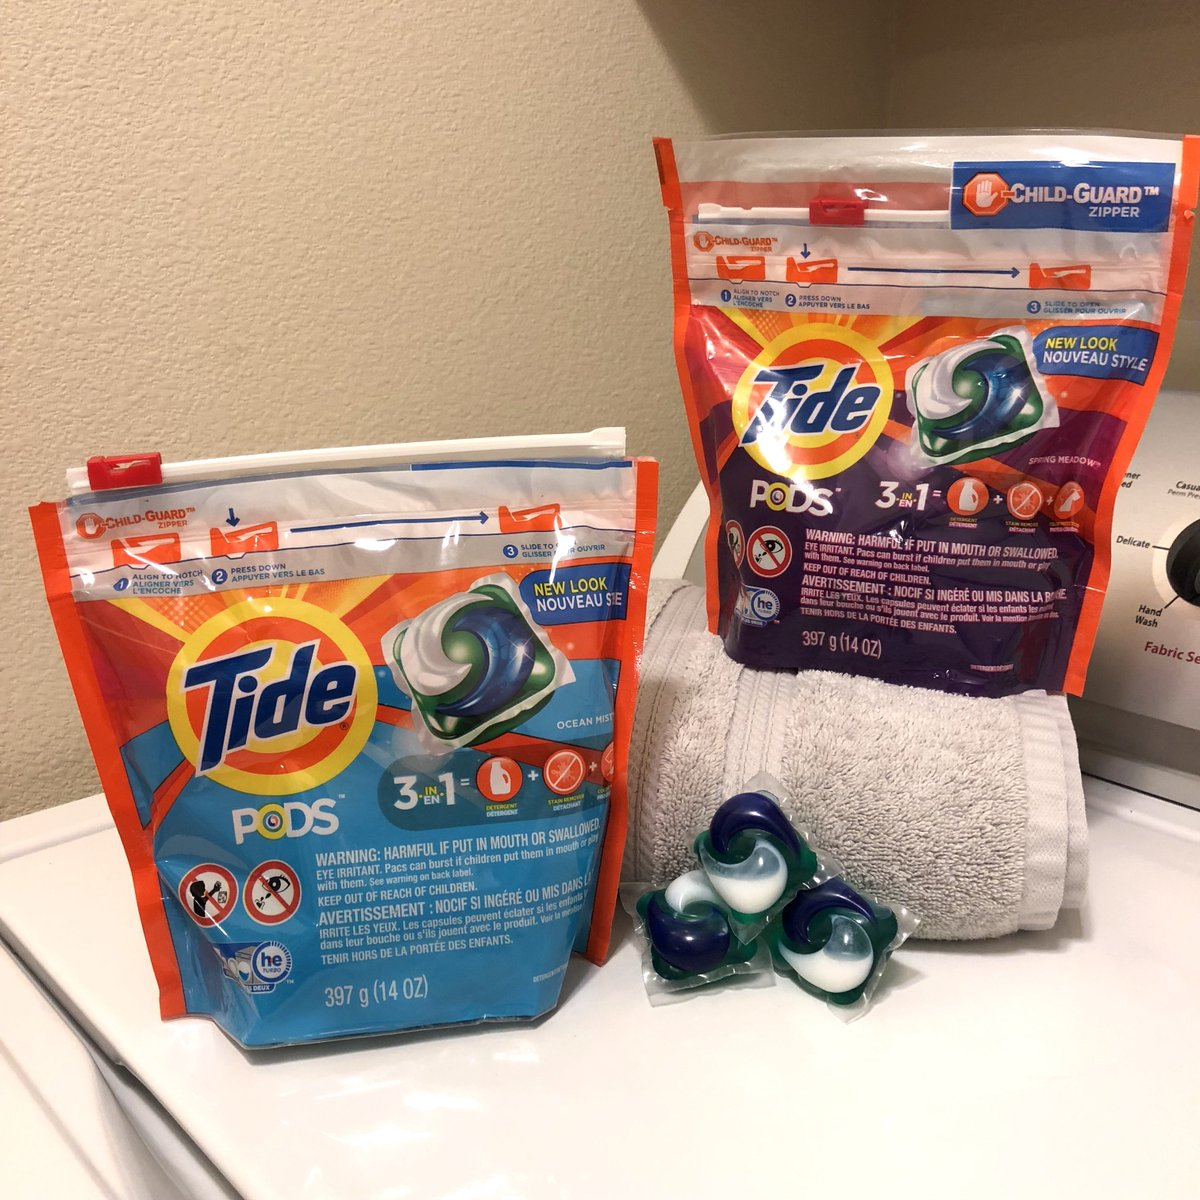 Stephanie On Twitter Ad Save 3 On Tide Pods At Walmart Using A P G Brandsaver Coupon Tide Pods Spring Meadow 16 Ct Has Everyday Price Of 4 94 W 3 Off You Pay